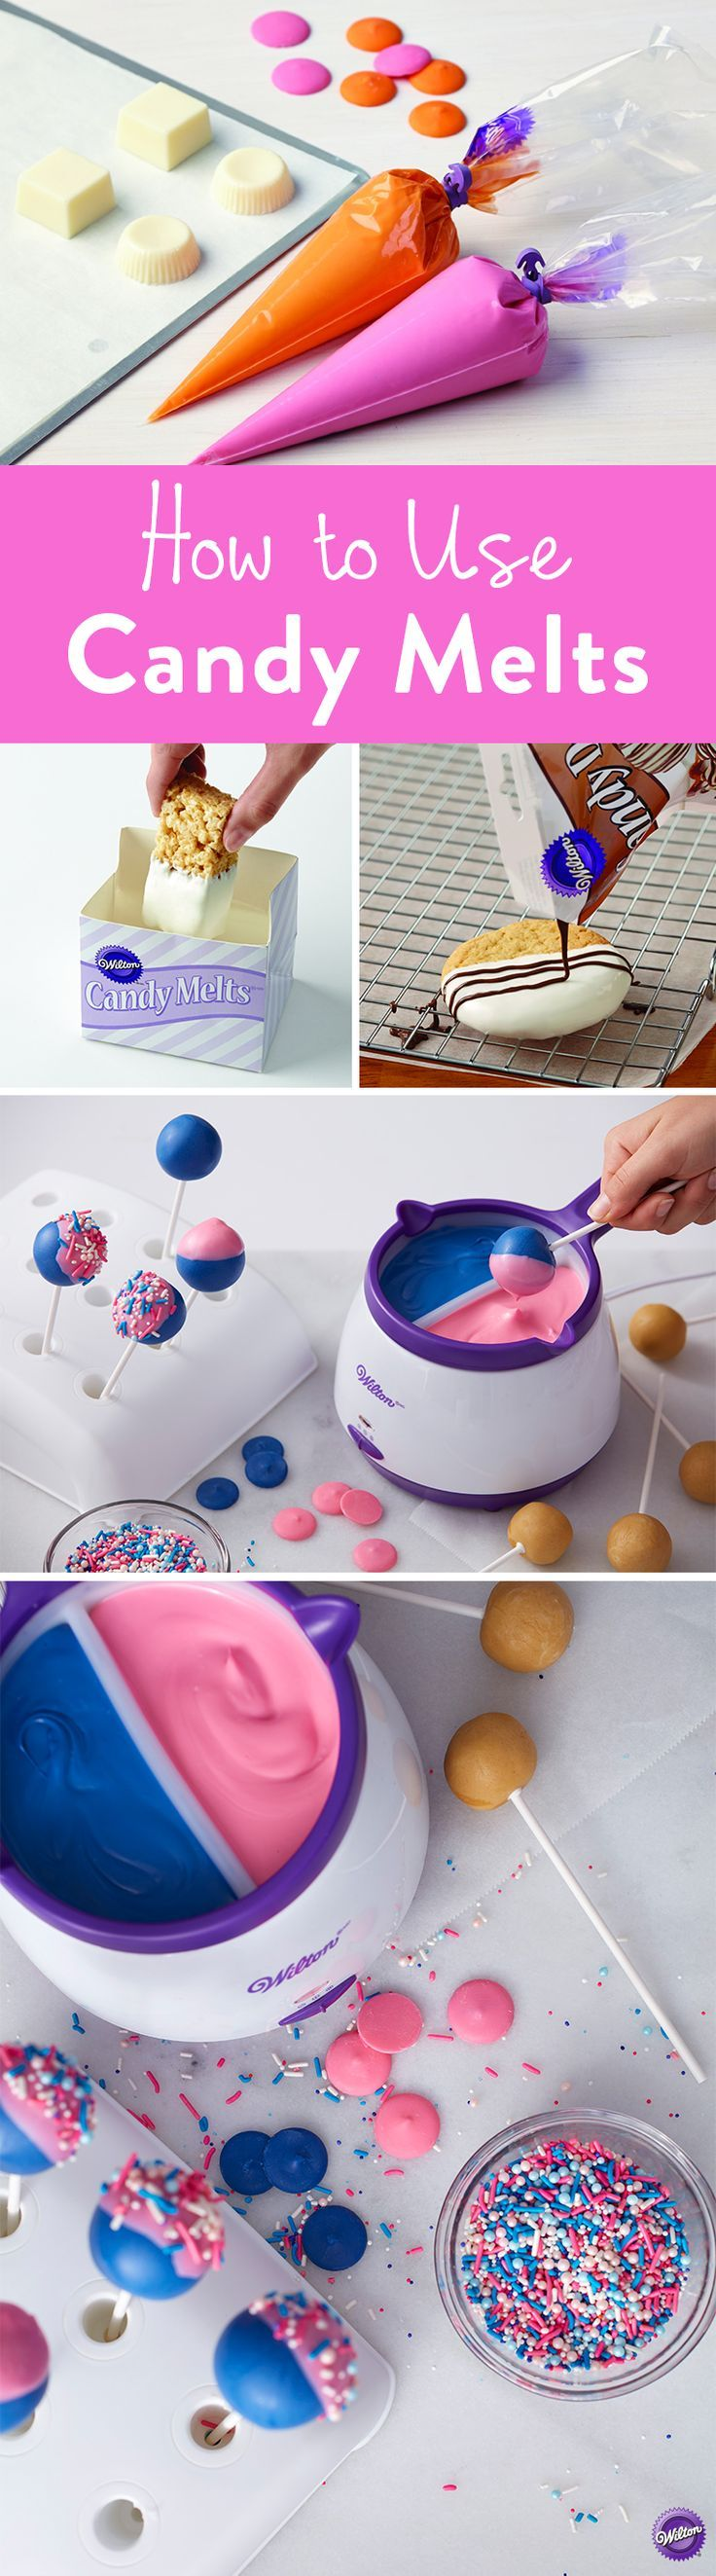 How to Use Candy Melts - We made a list of some of the most commonly asked questions about Wilton Candy Melts Candy and created a video to answer them for you.